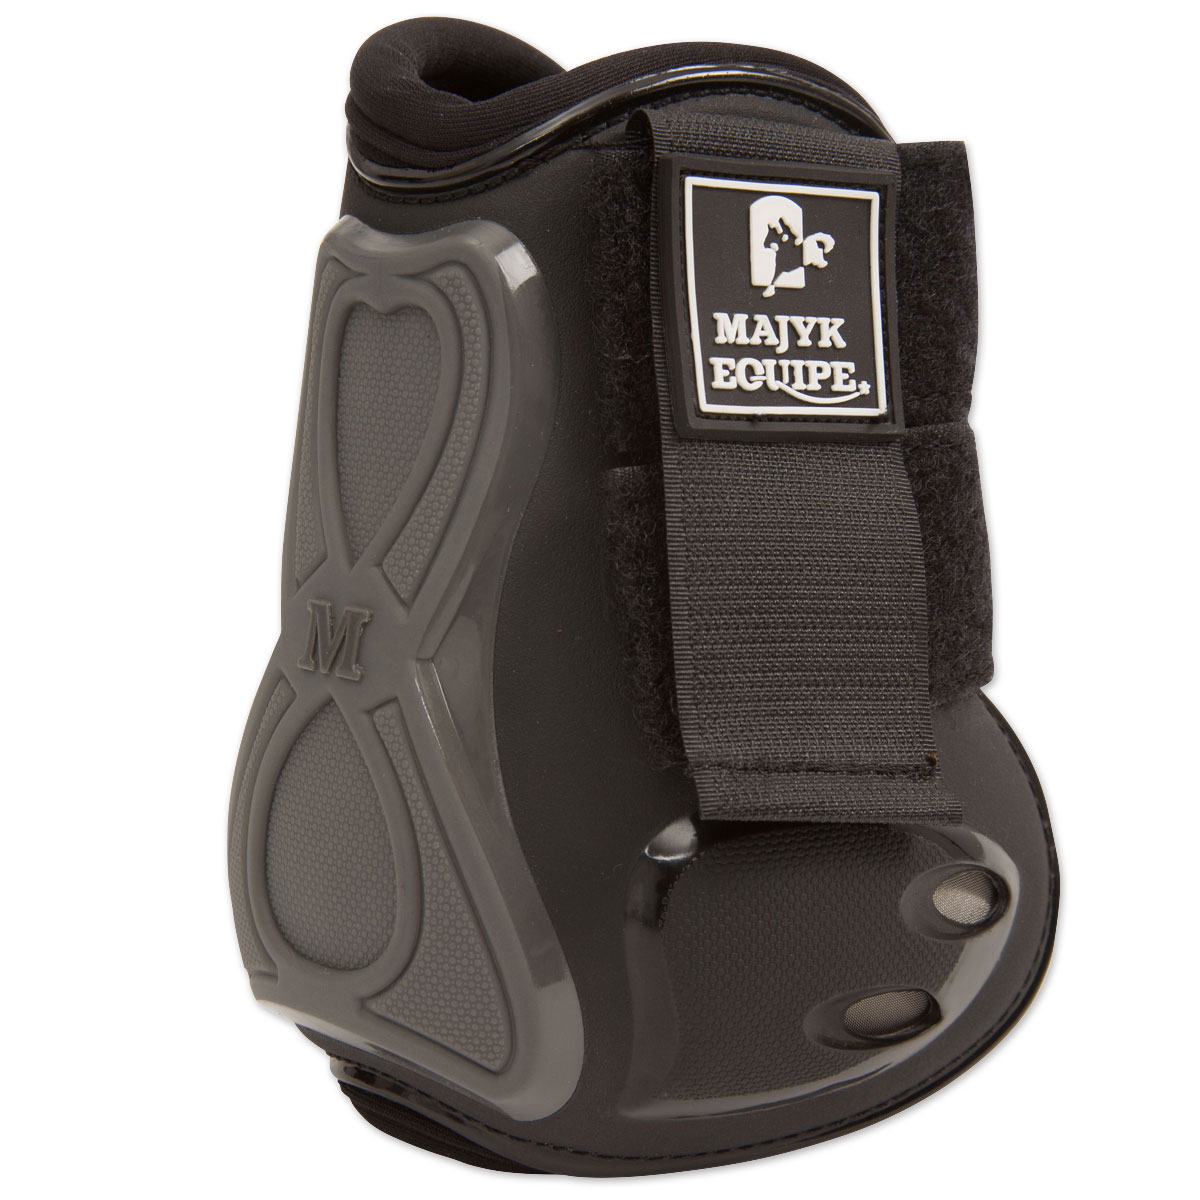 Majyk Equipe Infinity Vented Tendon Jump Boot - Hind